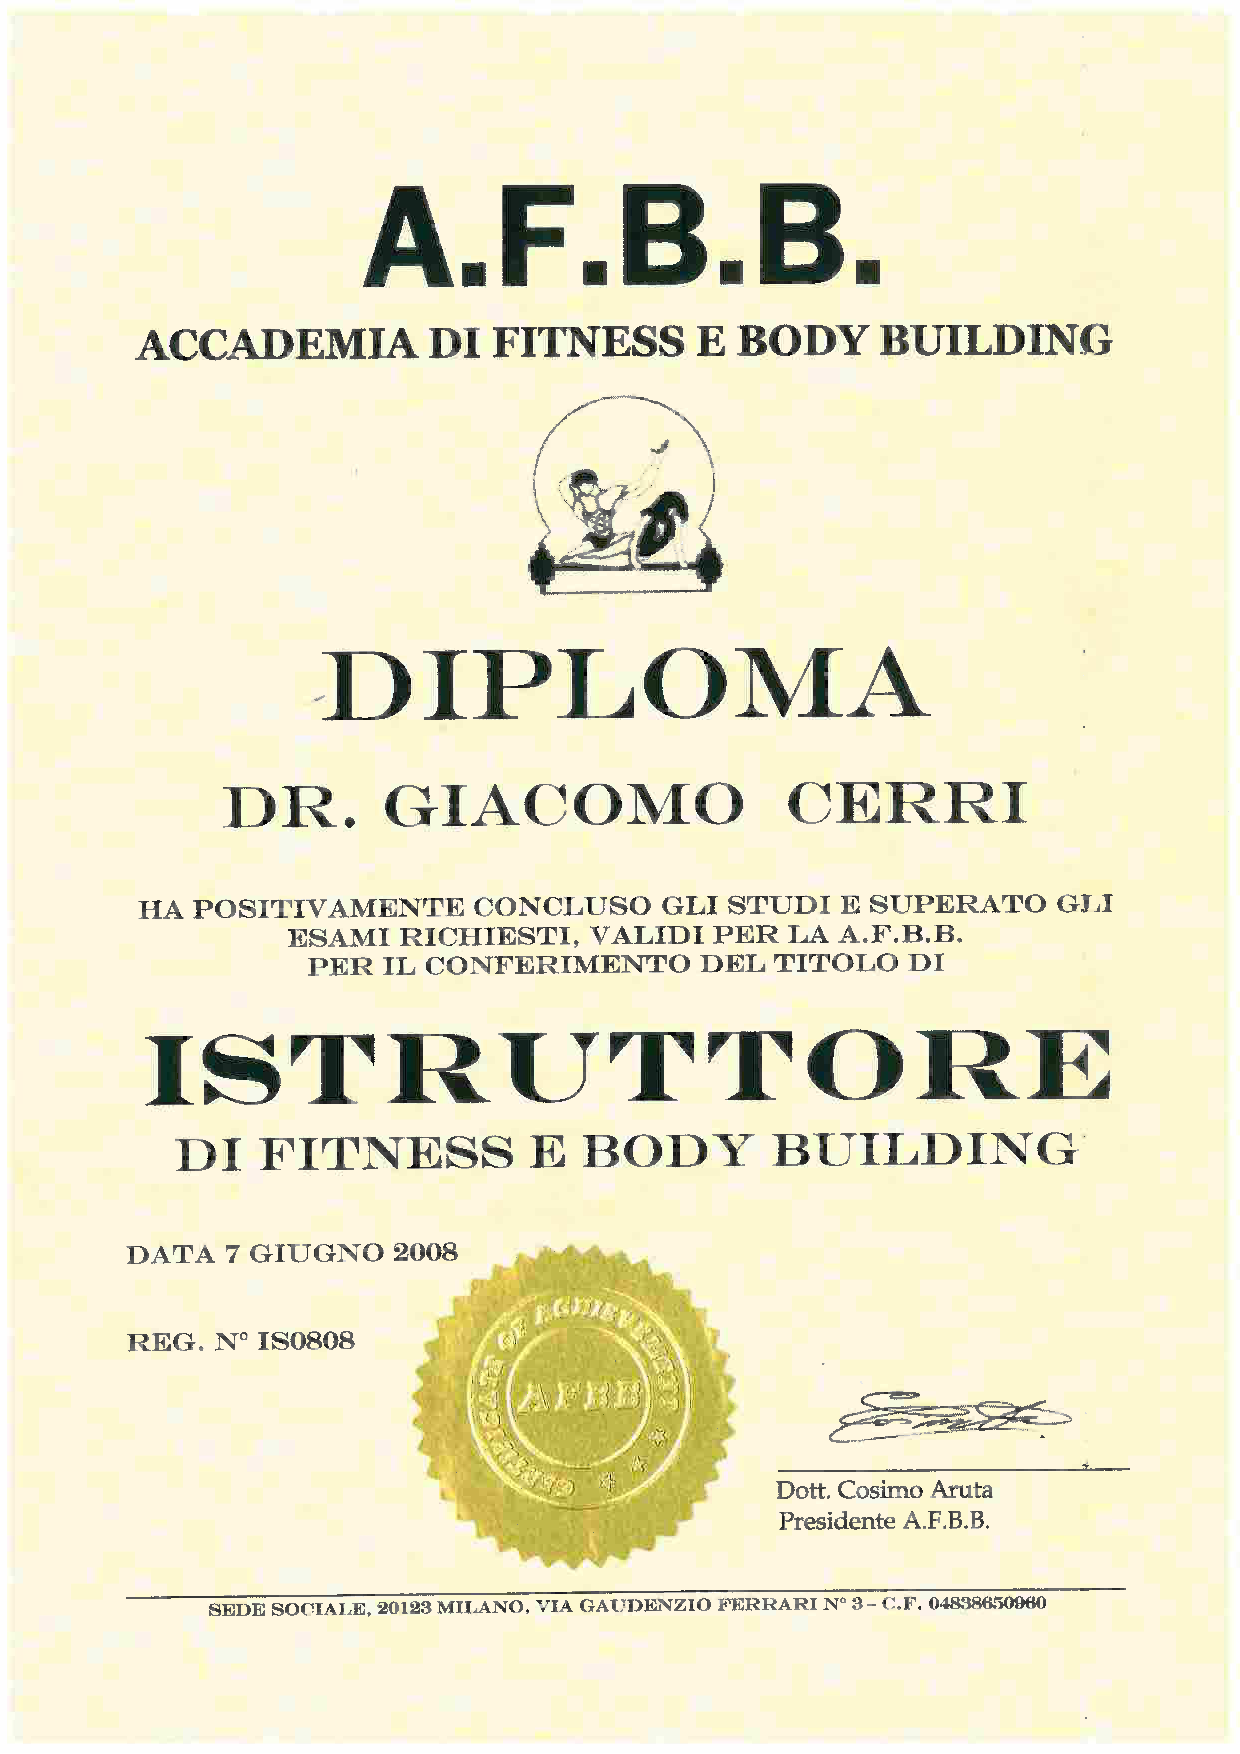 Diploma Istruttore Fitness